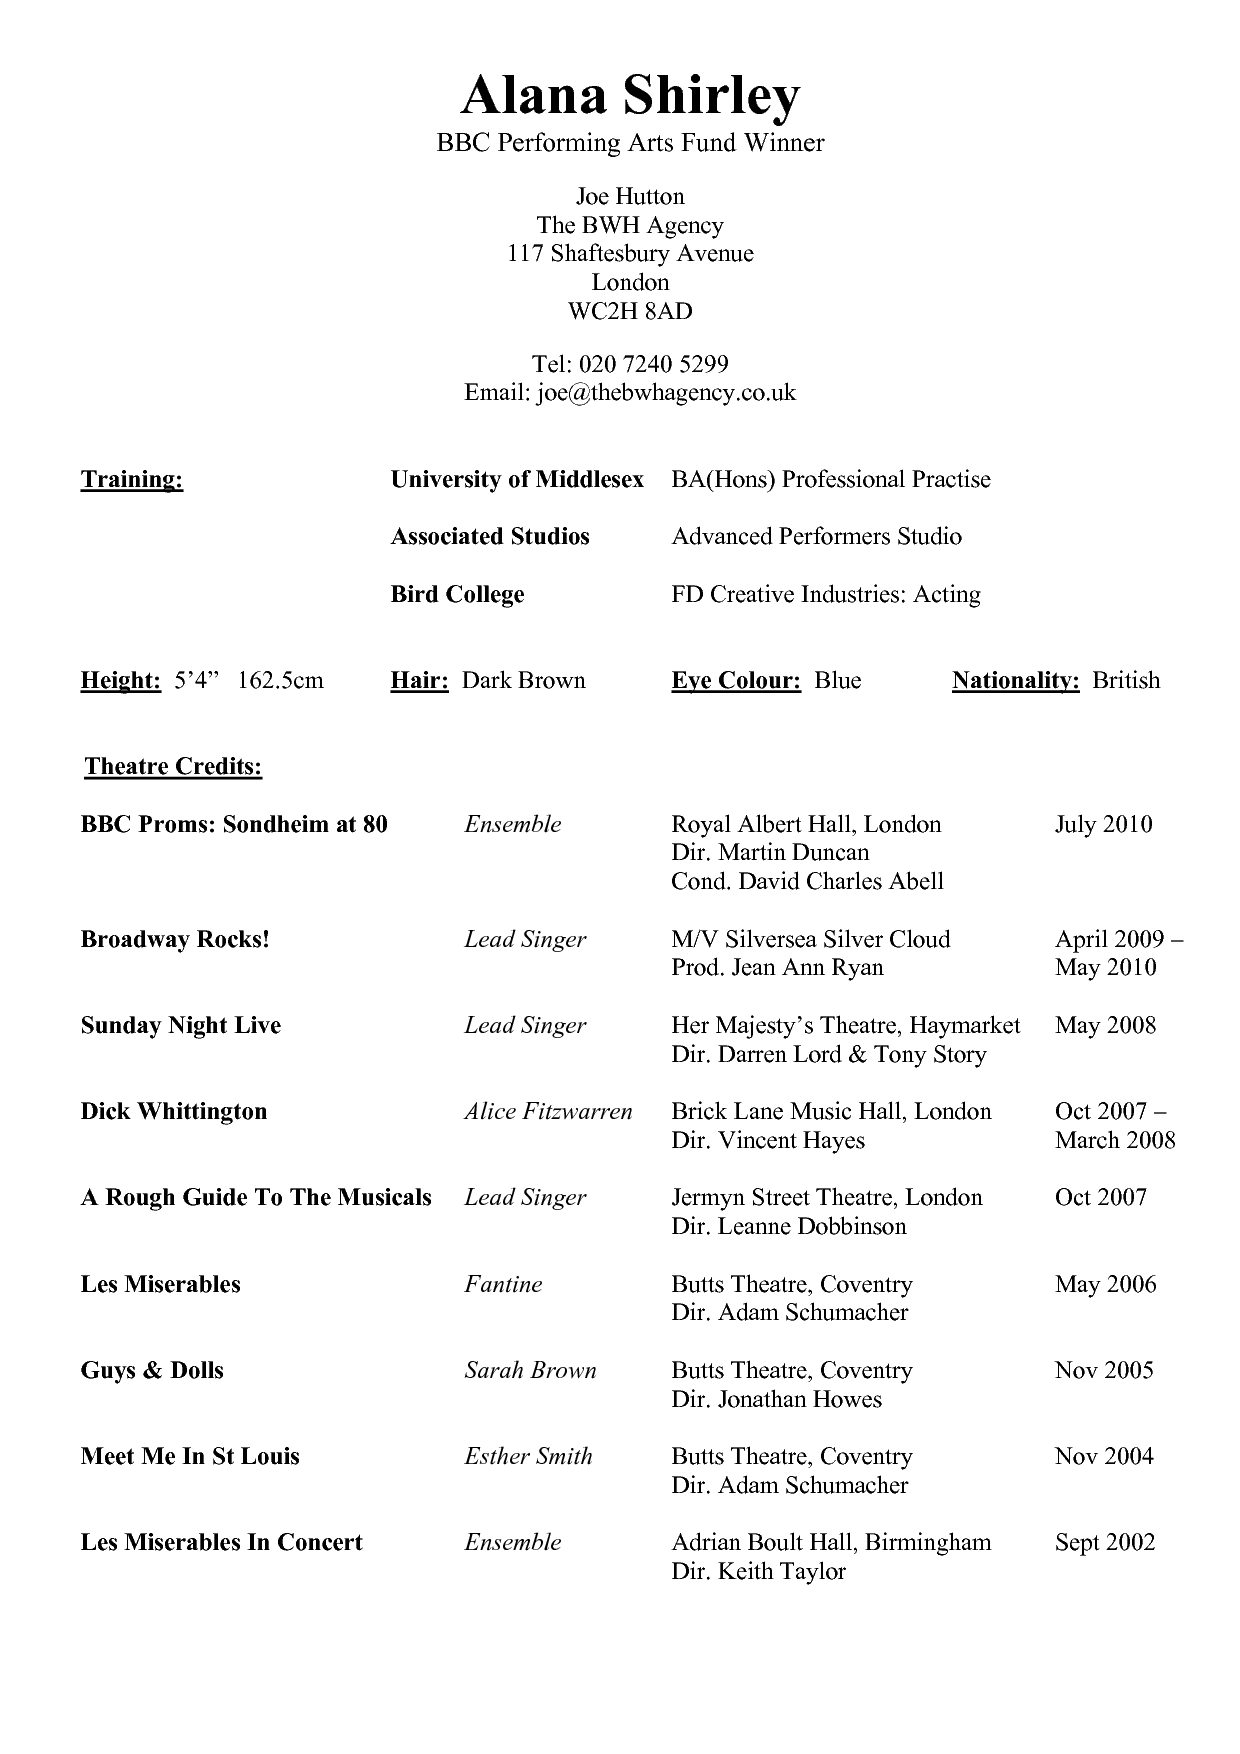 Art Resume Template Classy Resume Template Example For Performing Arts With Theatre Credits